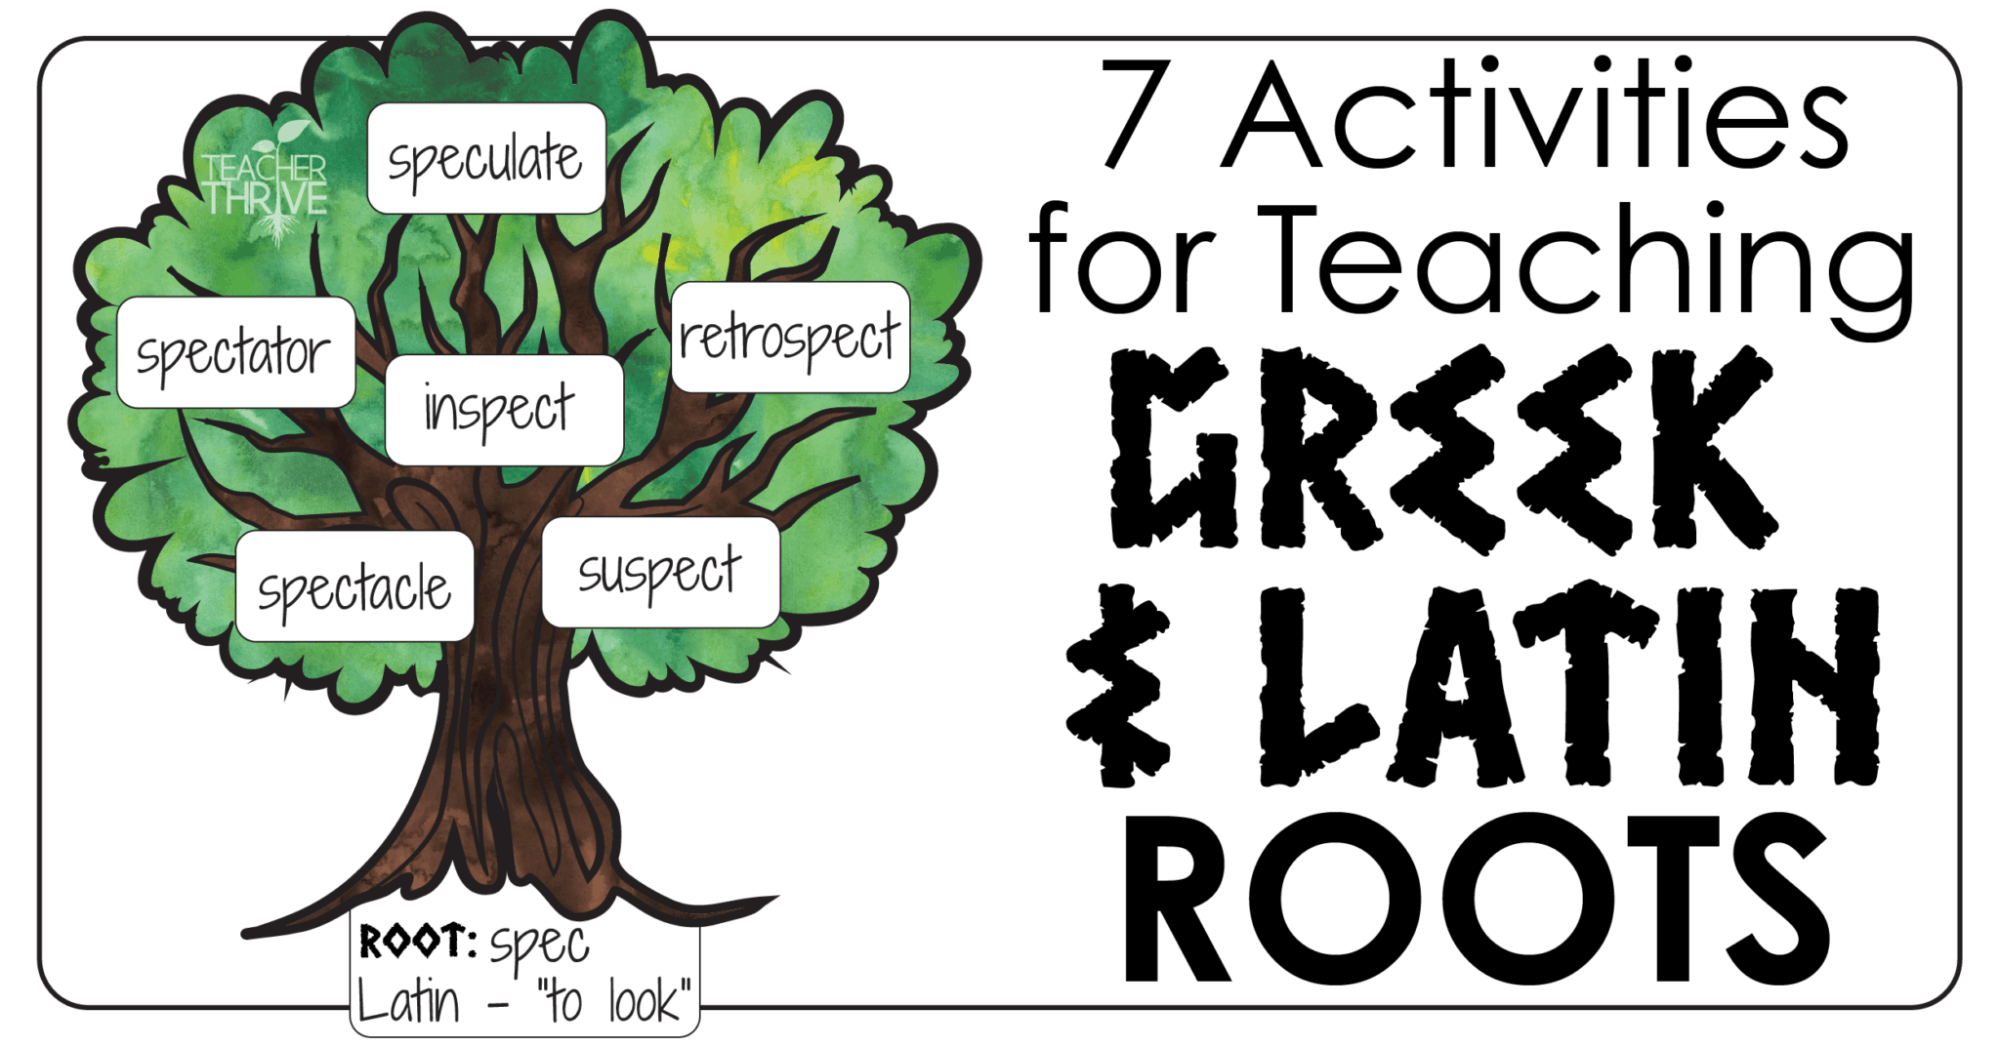 hight resolution of Teaching Greek and Latin Roots • Teacher Thrive